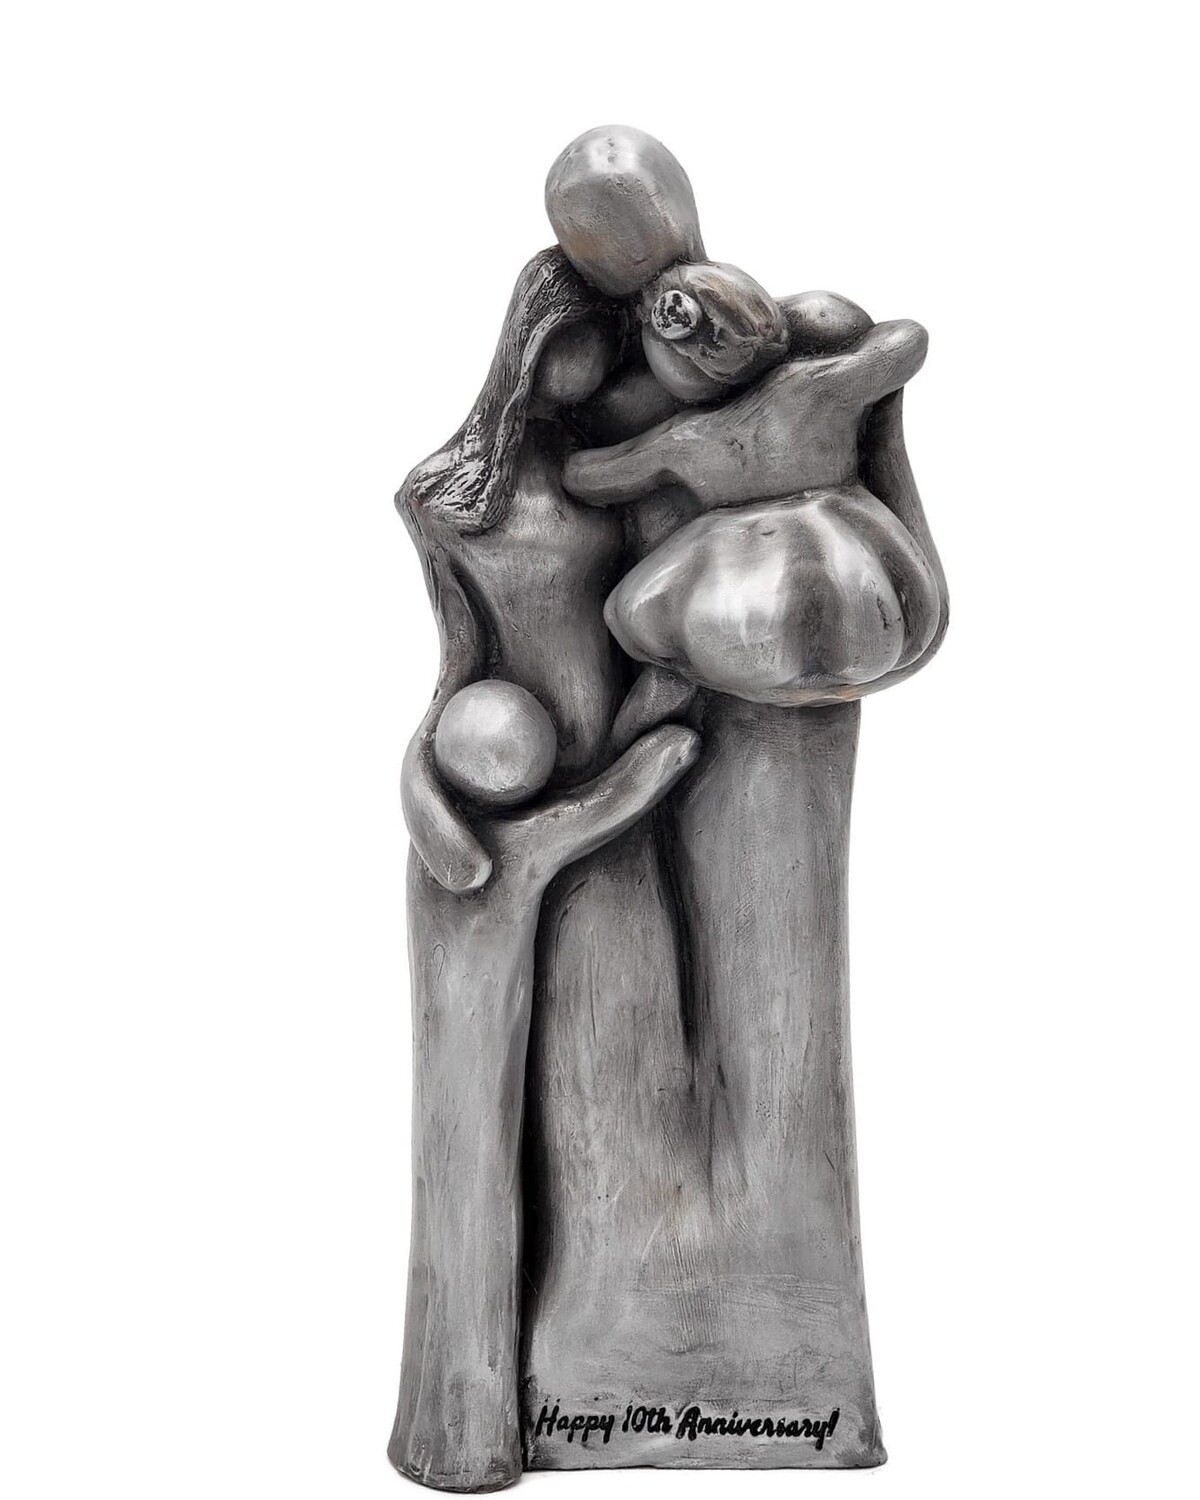 10th Anniversary Gift Aluminum Family Sculpture with Two Children